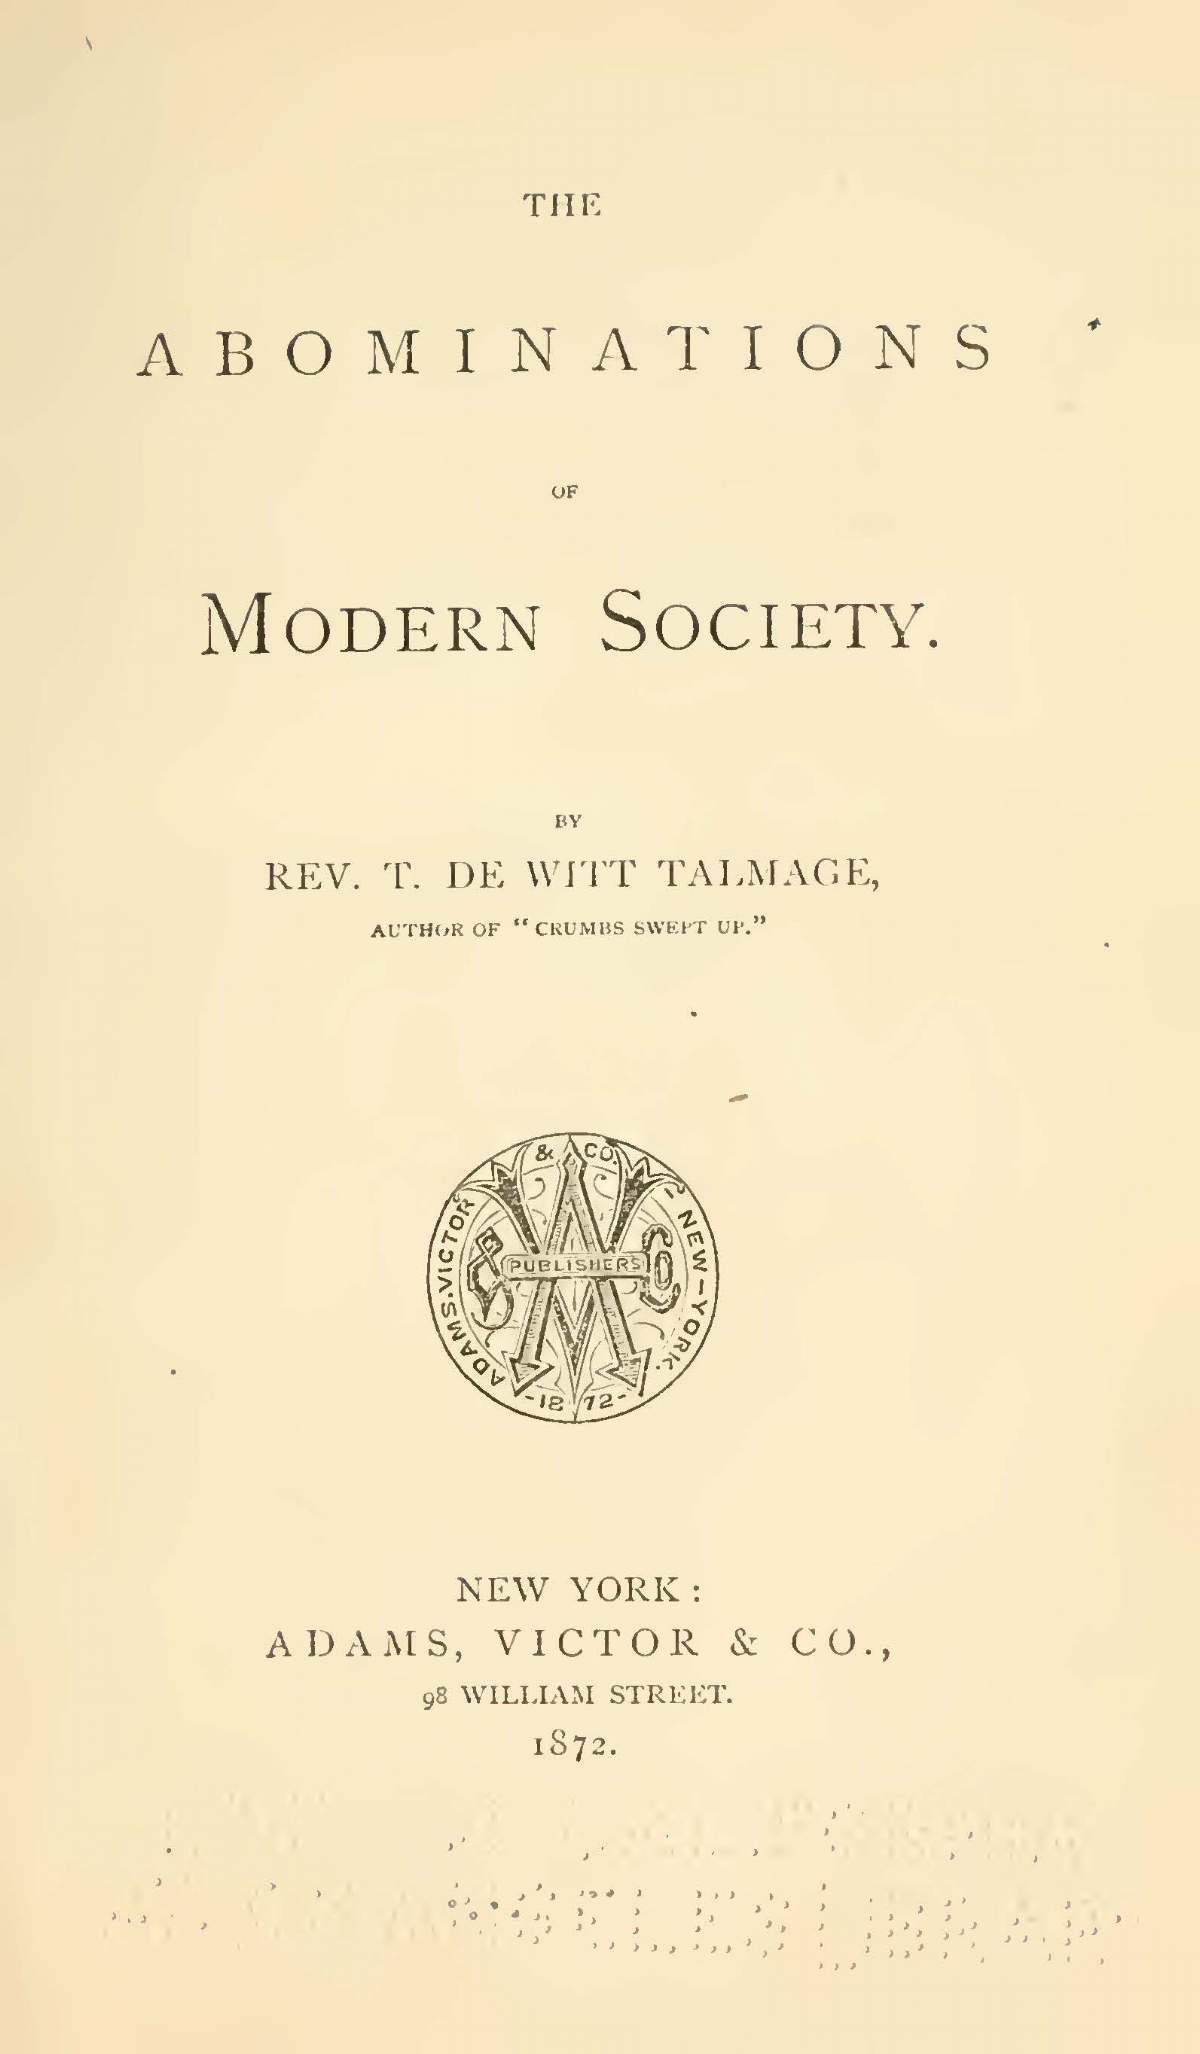 Talmage, Thomas De Witt, The Abominations of Modern Society Title Page.jpg